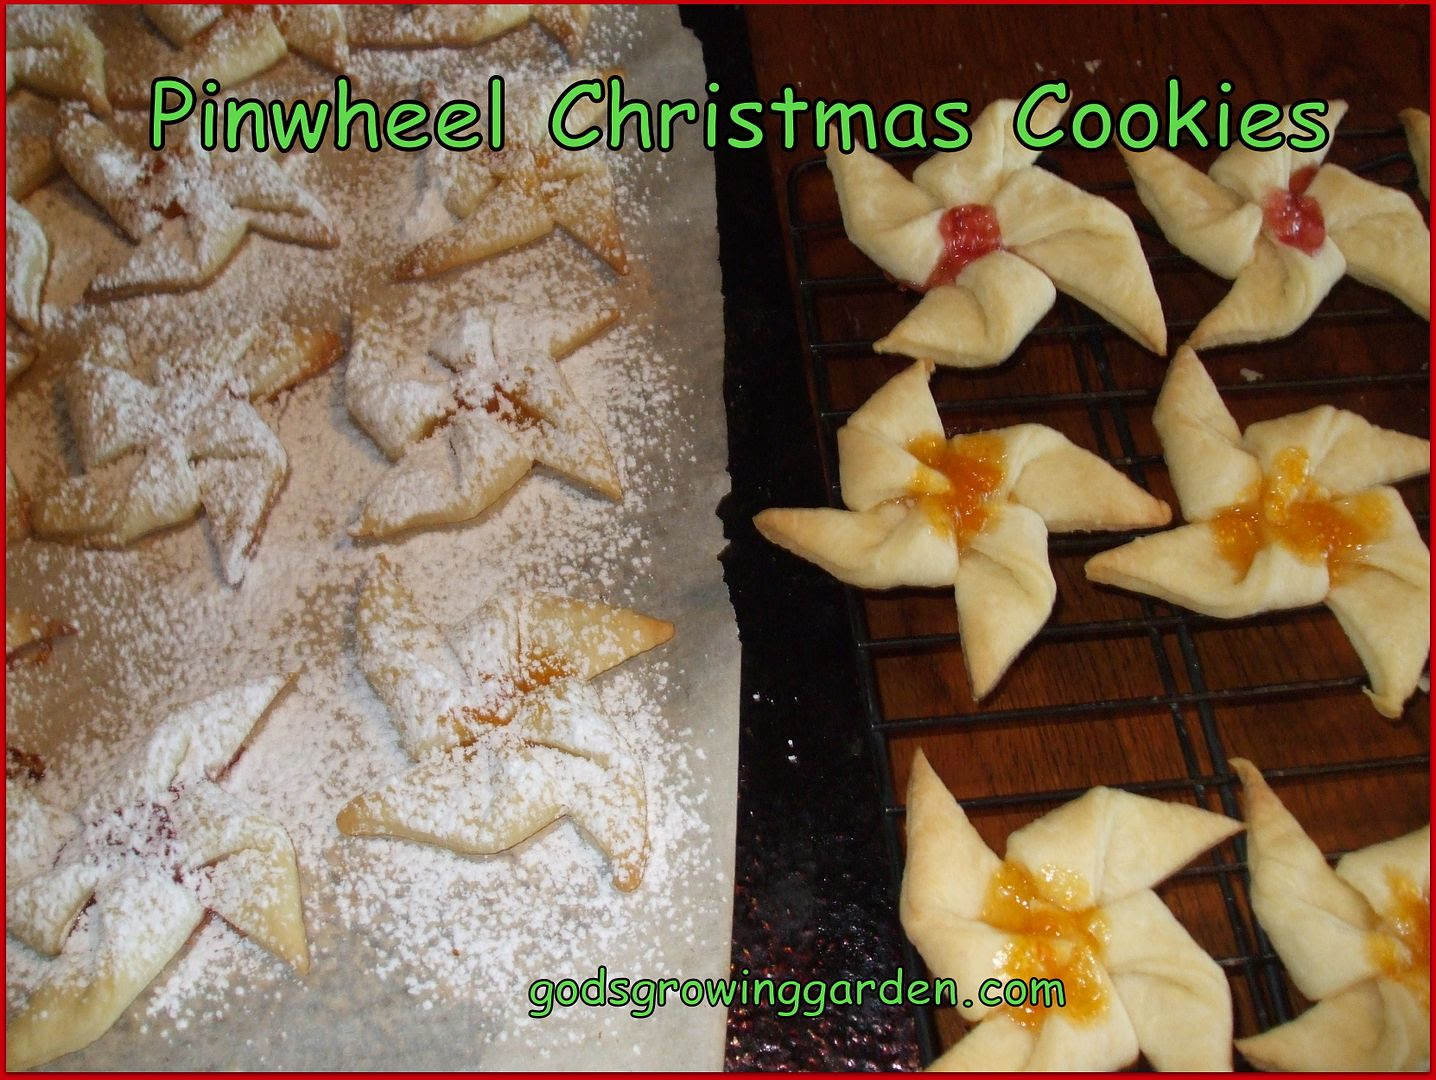 Pinwheel Cookies by Angie Ouellette-Tower for godsgrowinggarden.com photo DSCF0686_zps238dd678.jpg